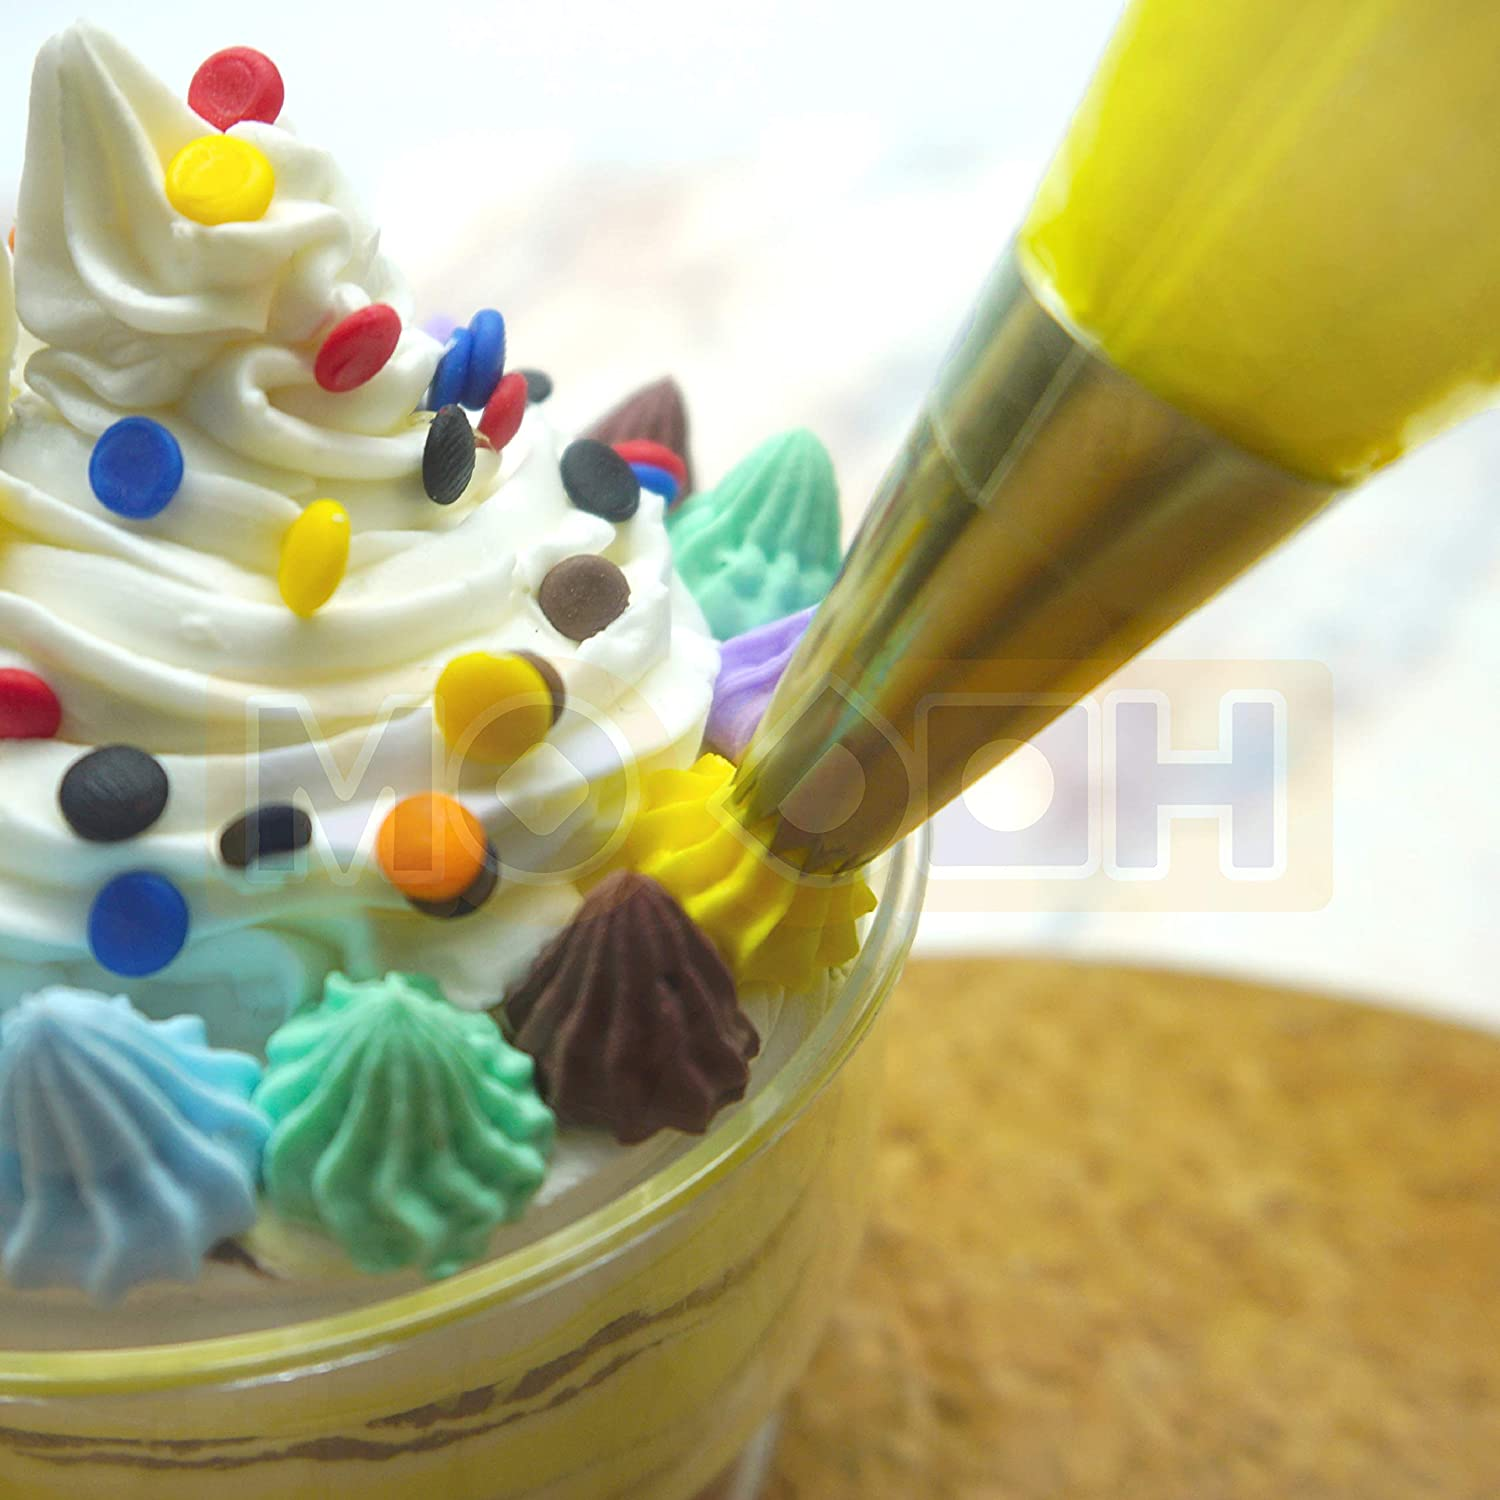 MODOH Simulation Fake Whipped Cream Clay with Piping Nozzles Tips Pink